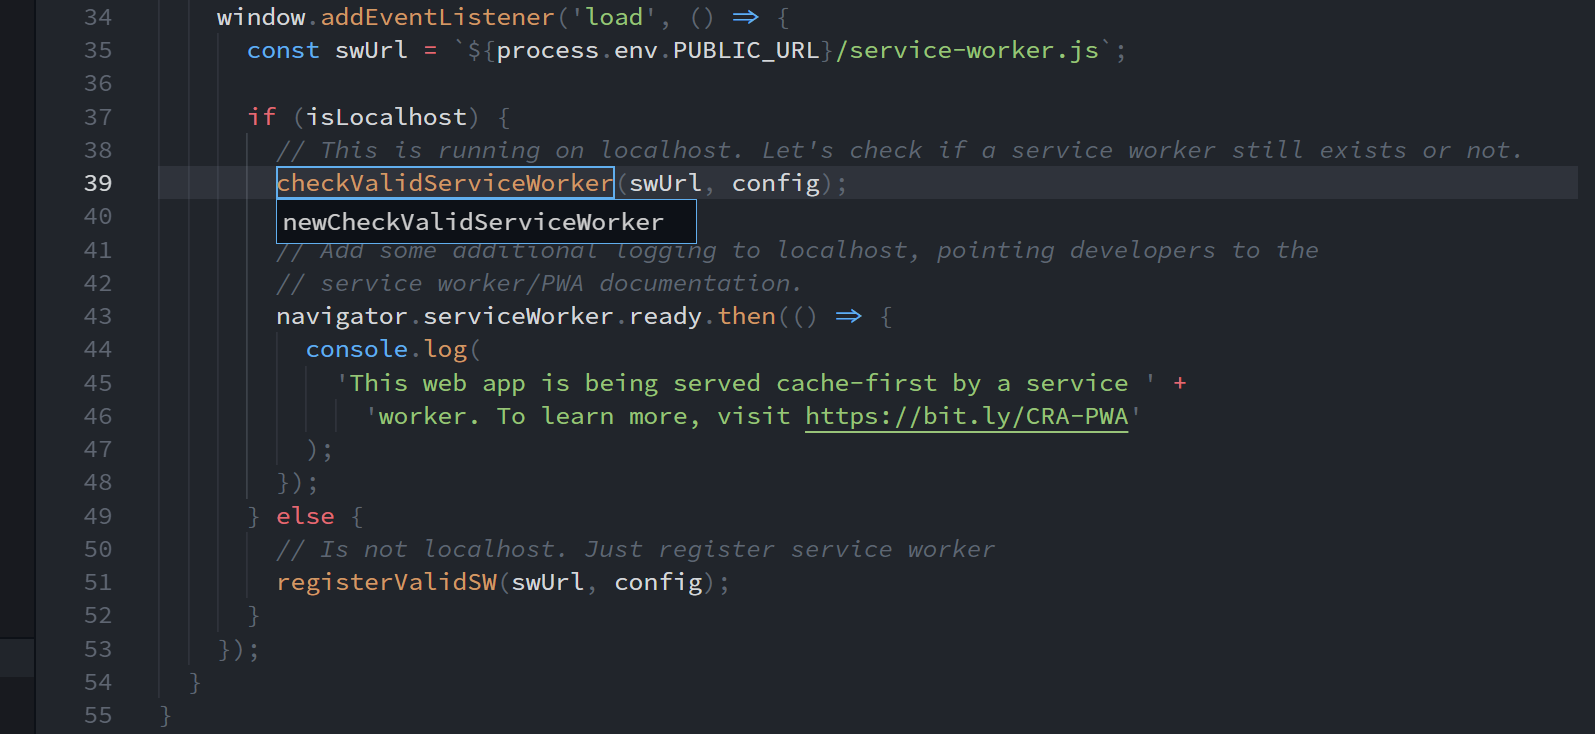 Changing the name of checkValidServiceWorker